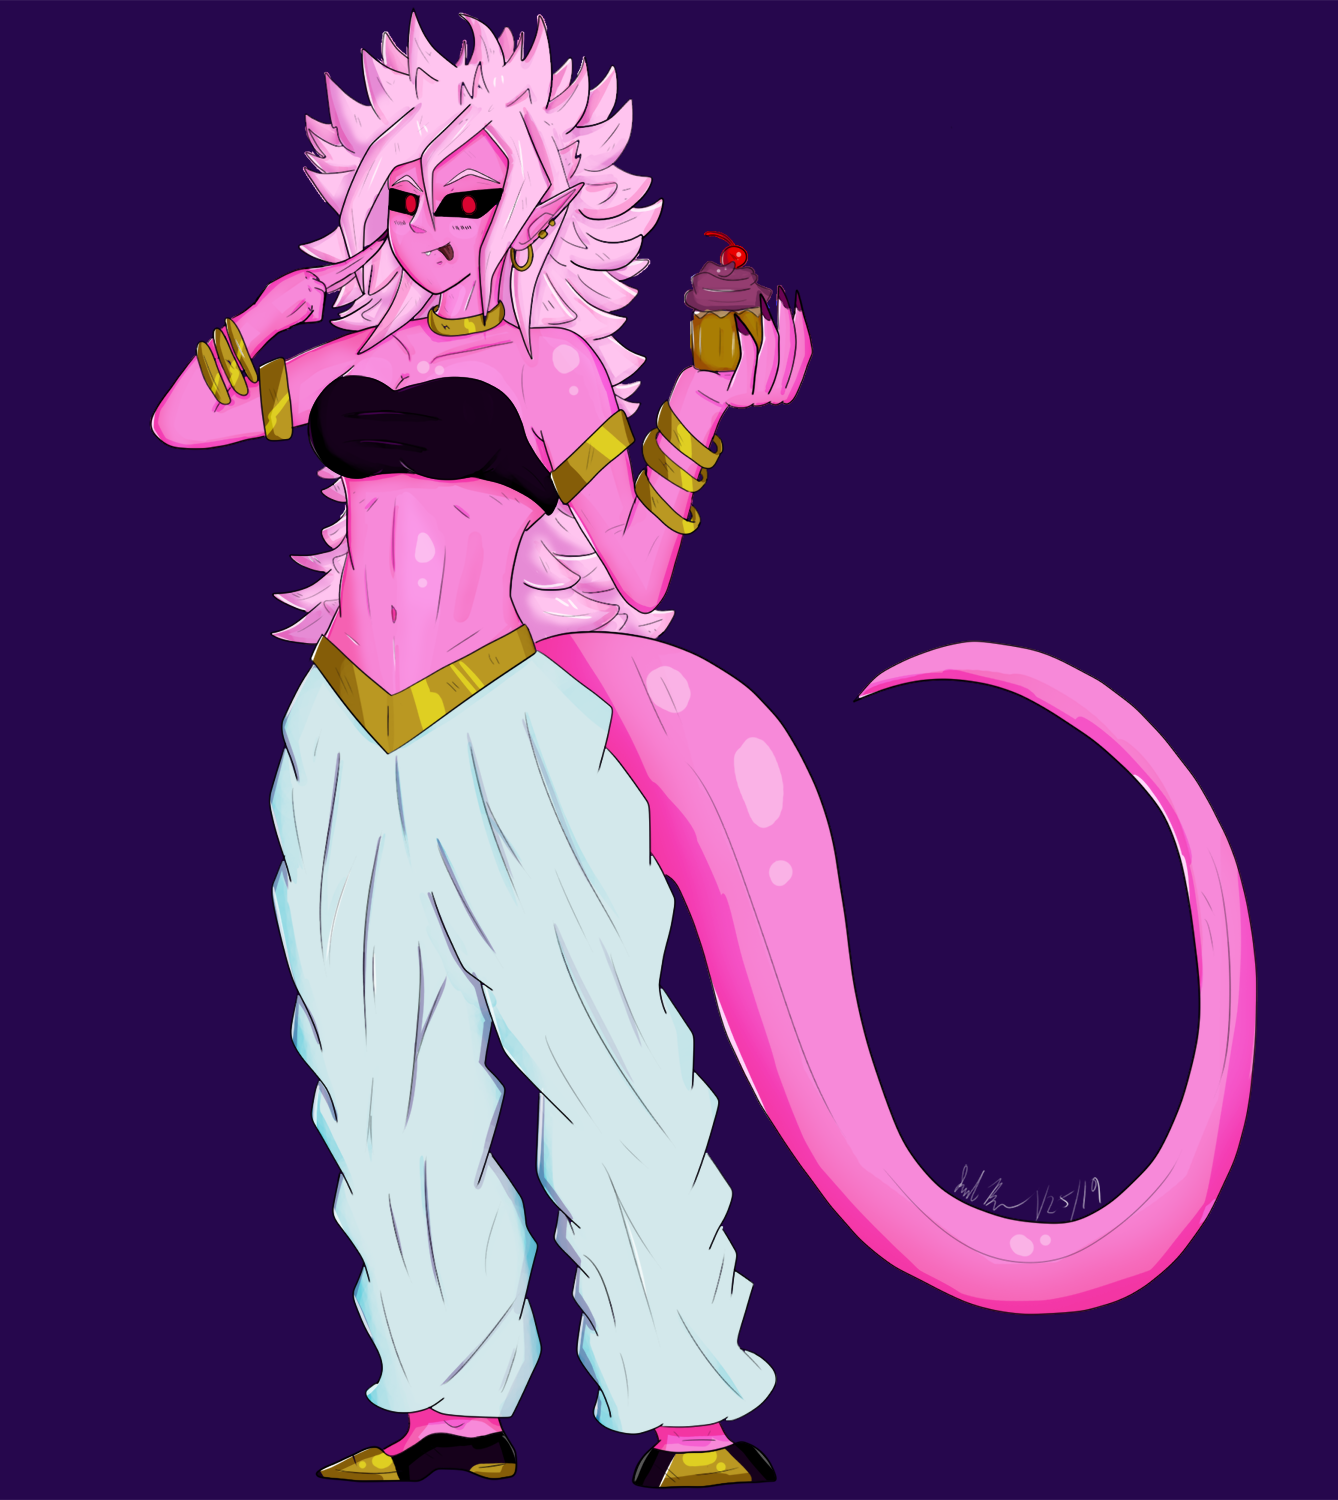 Android 21 has a Cupcake